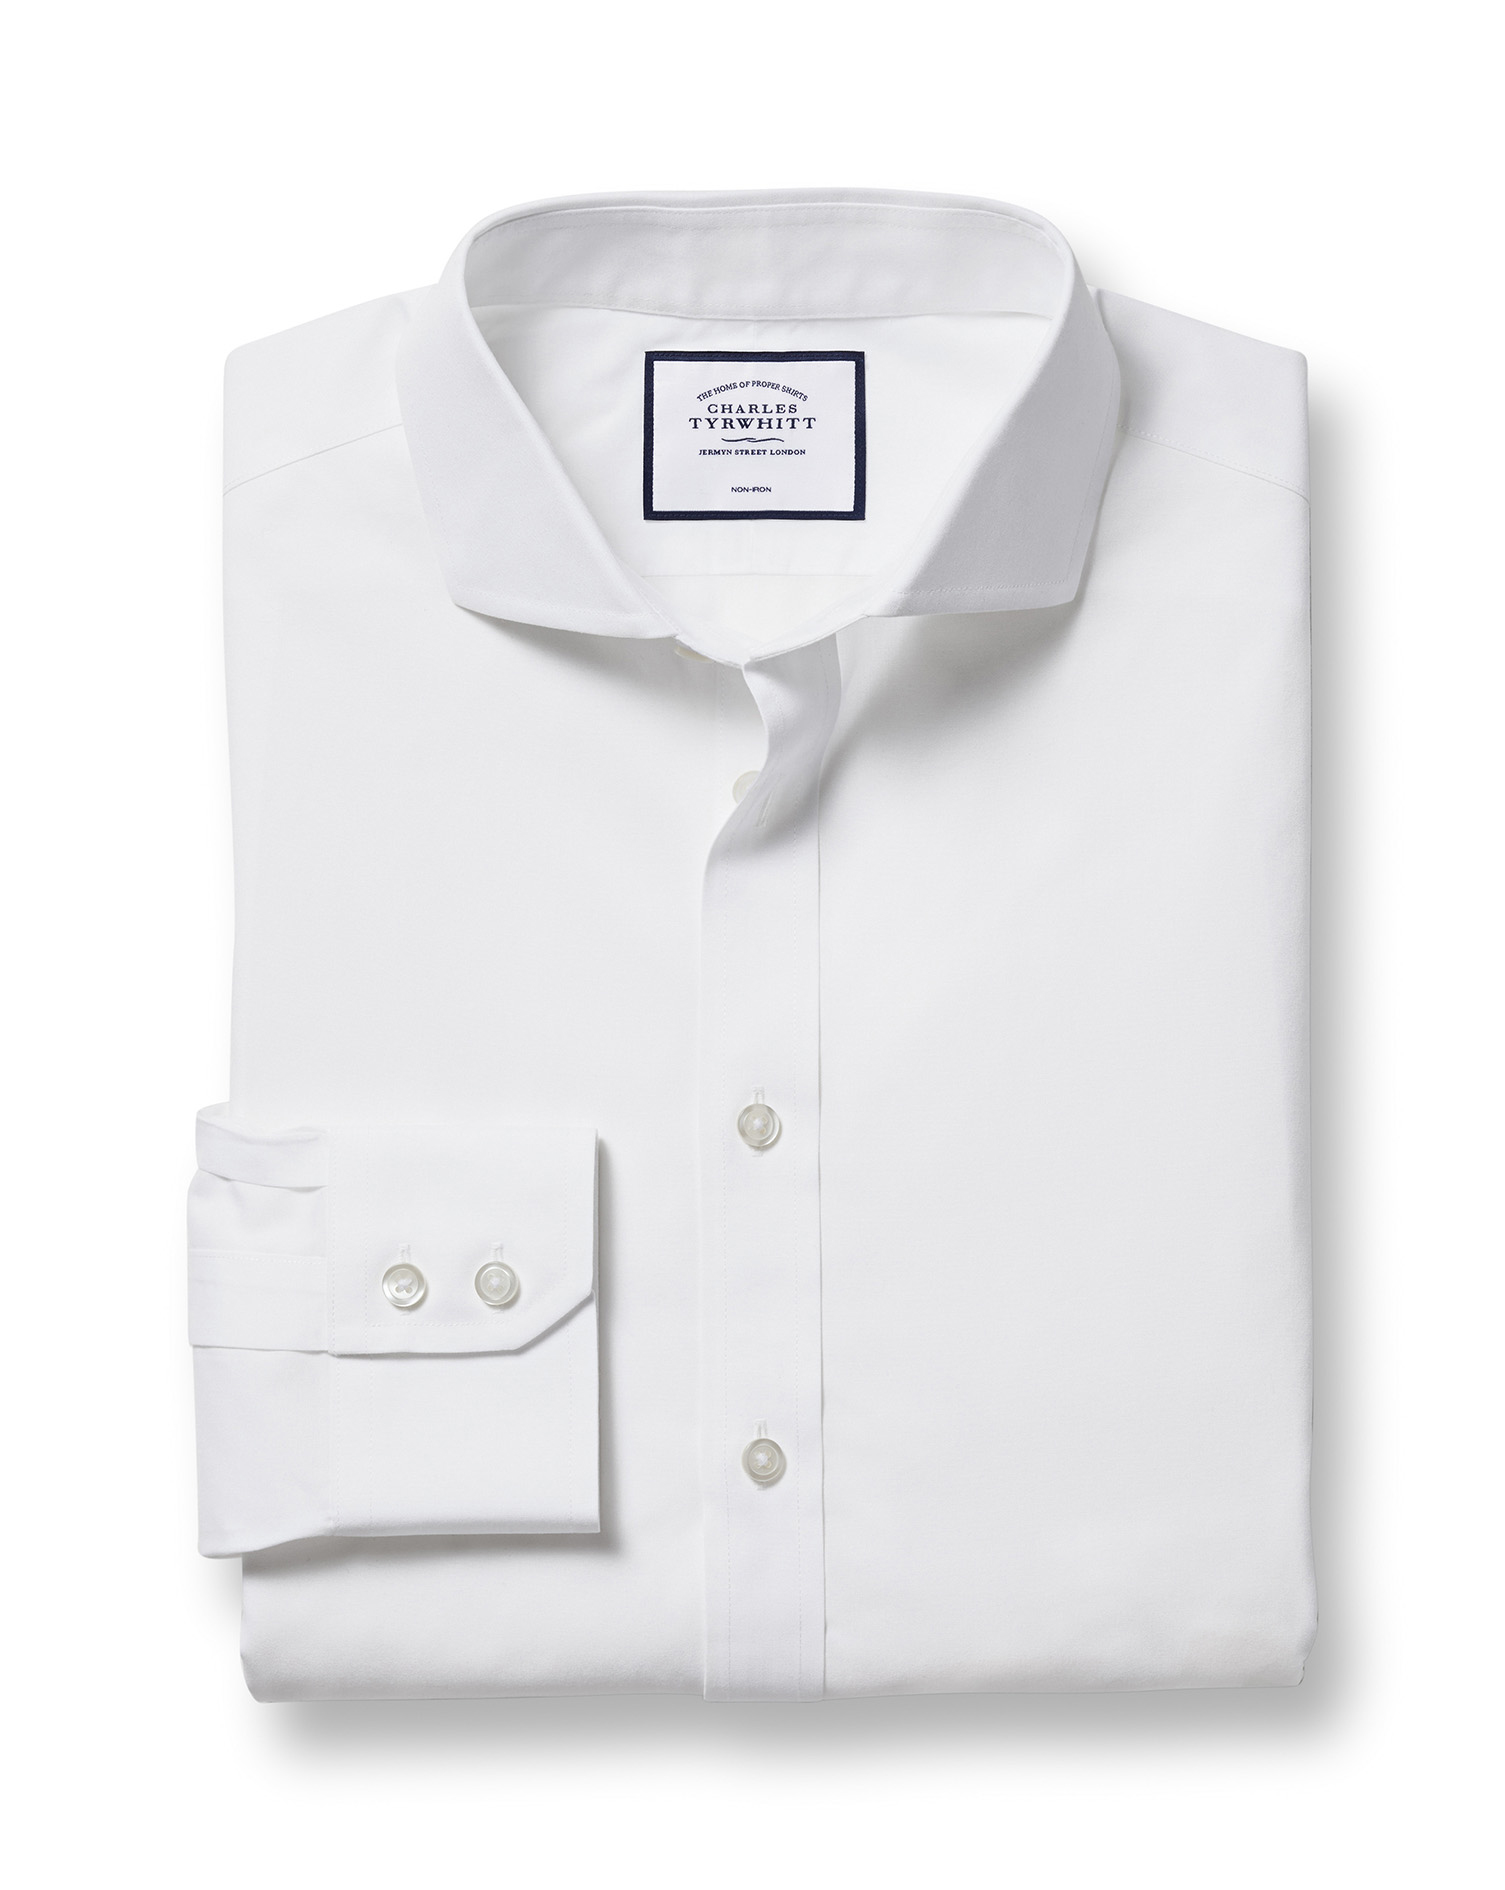 Slim Fit White Non-Iron Poplin Cutaway Cotton Formal Shirt Single Cuff Size 17.5/34 by Charles Tyrwh